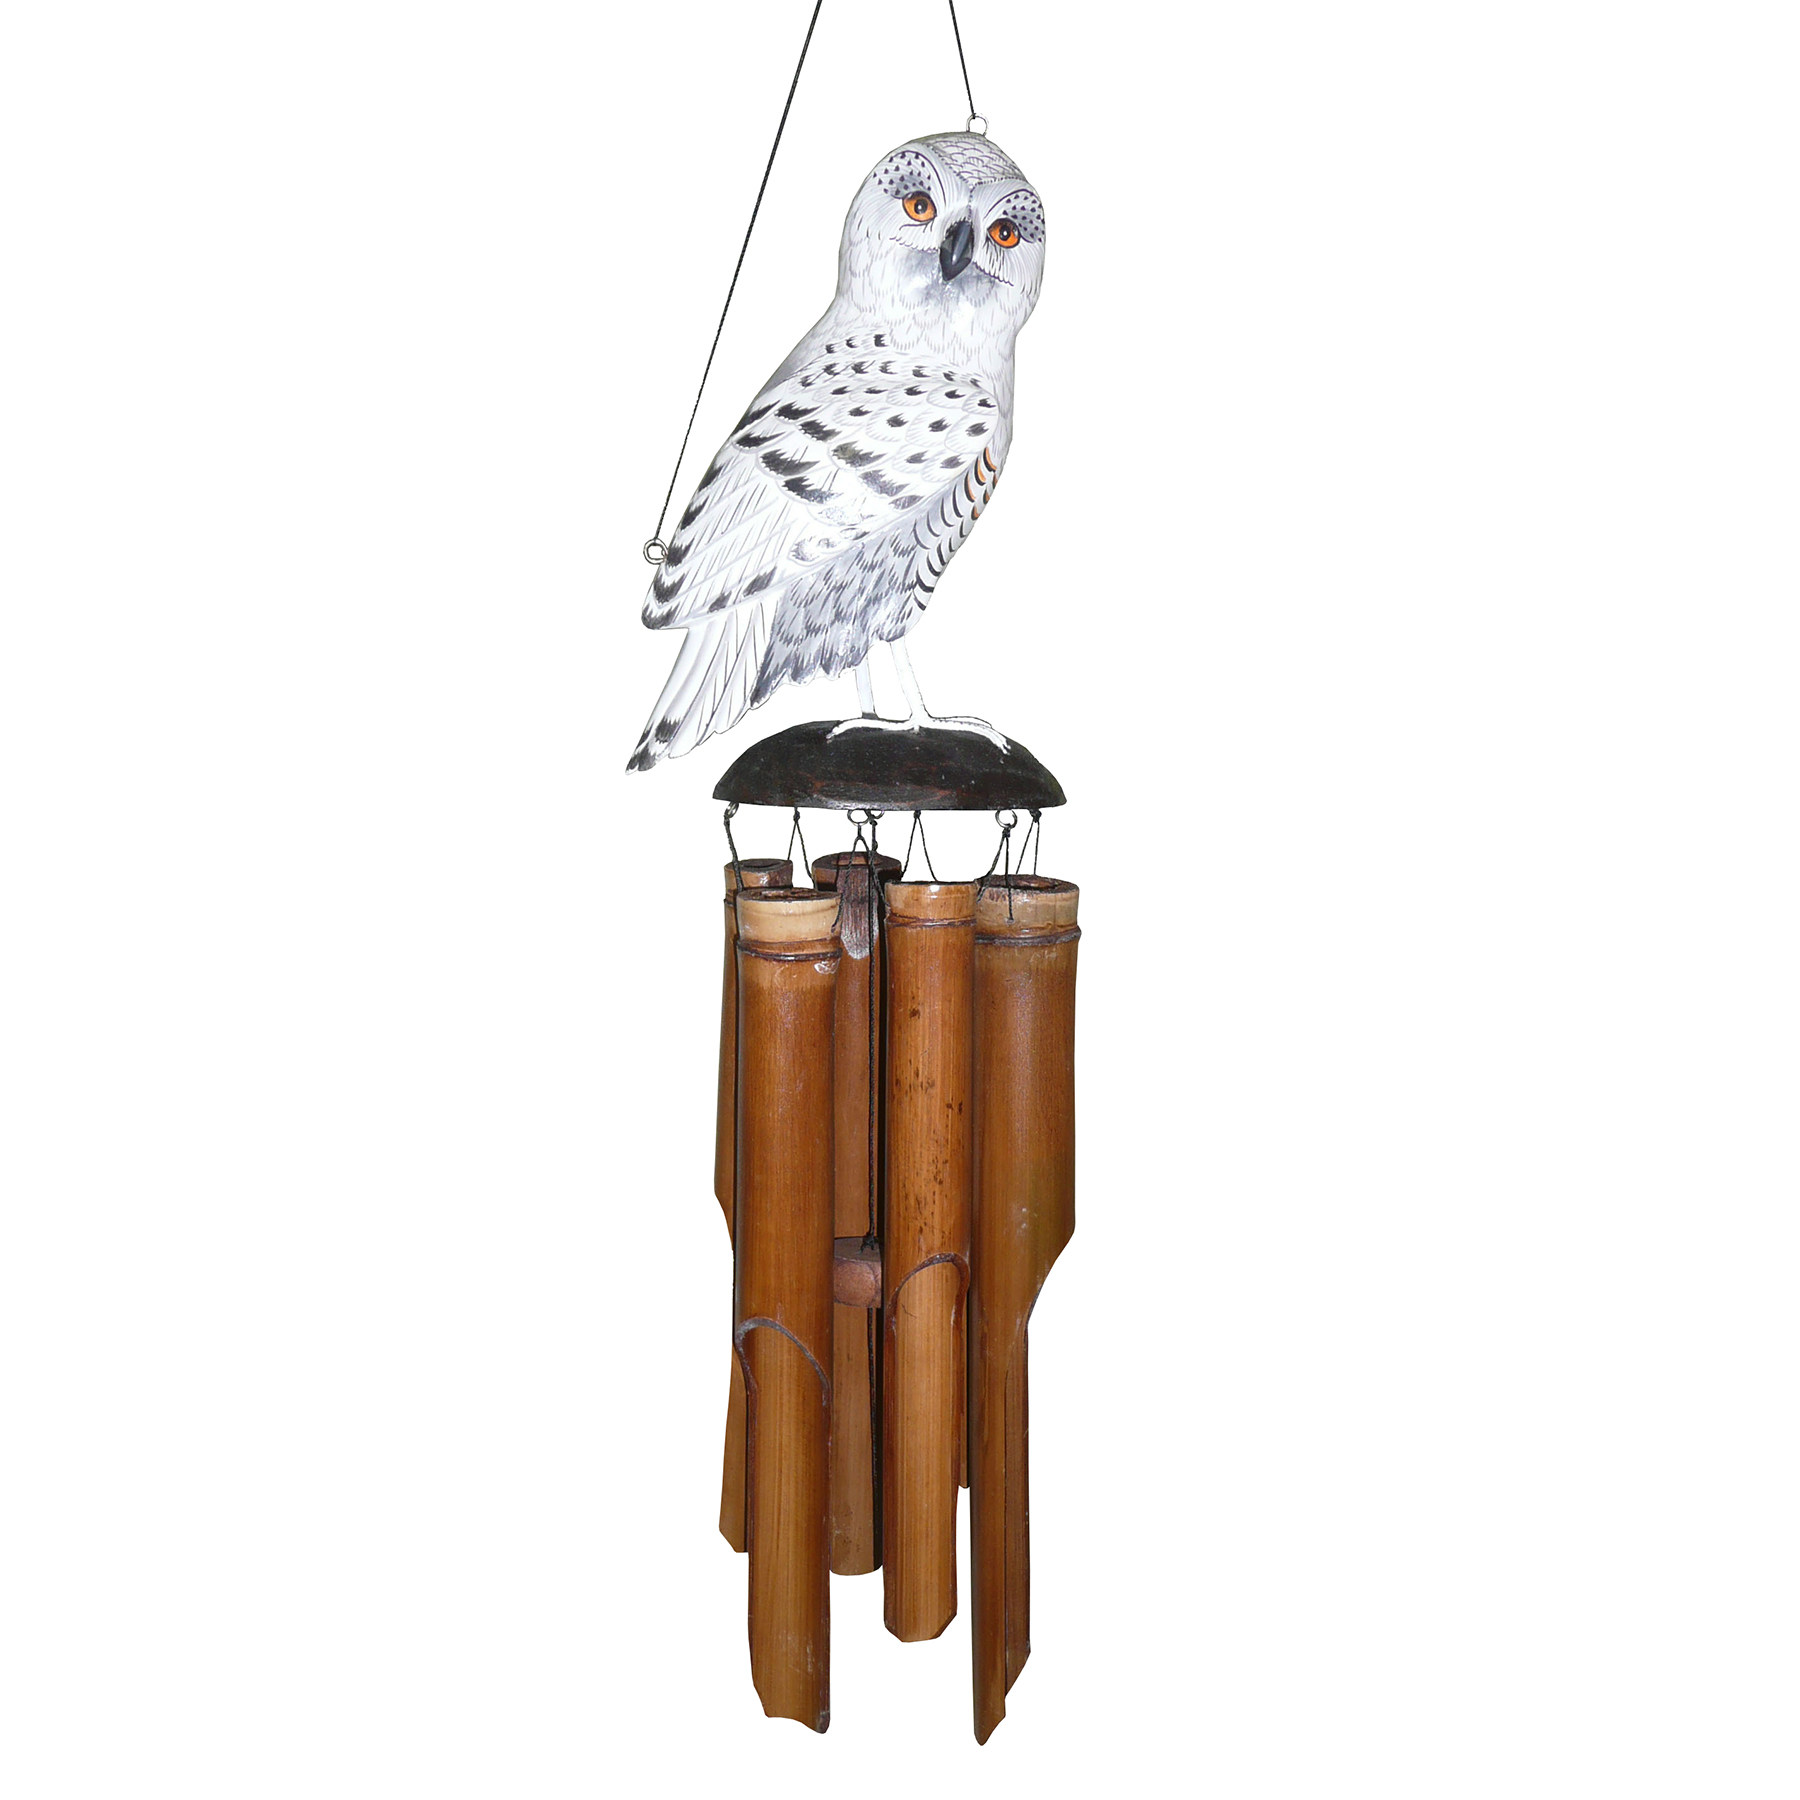 175SO - Snowy Owl Bamboo Wind Chime